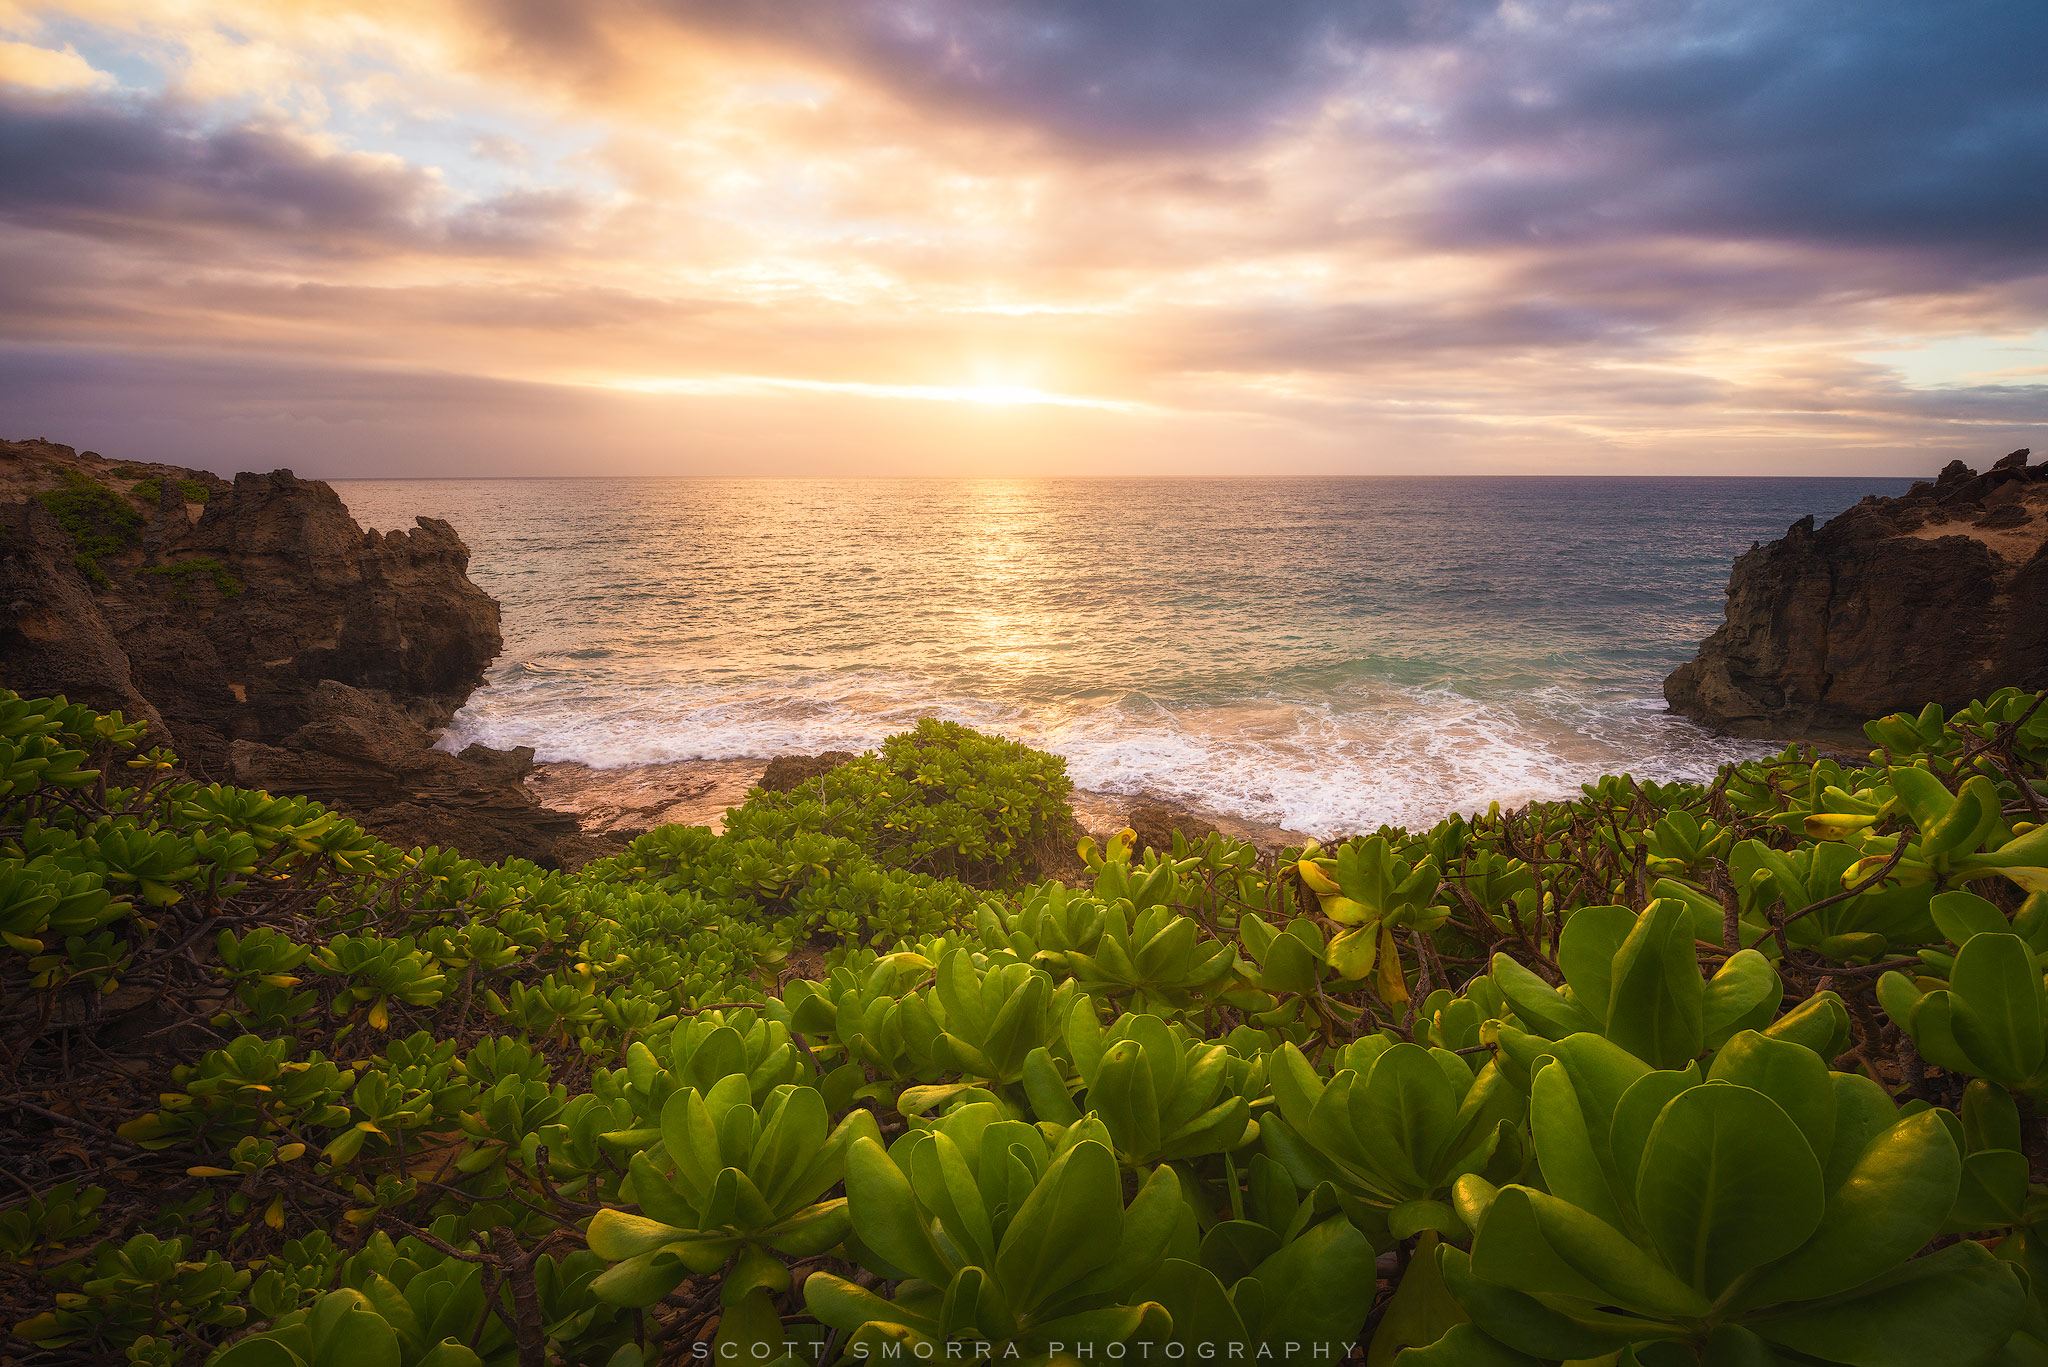 Fine Art Limited Edition of 50 - A gorgeous tropical sunrise over a stand of Naupaka and lithified cliffs near Poipu, Kauai...